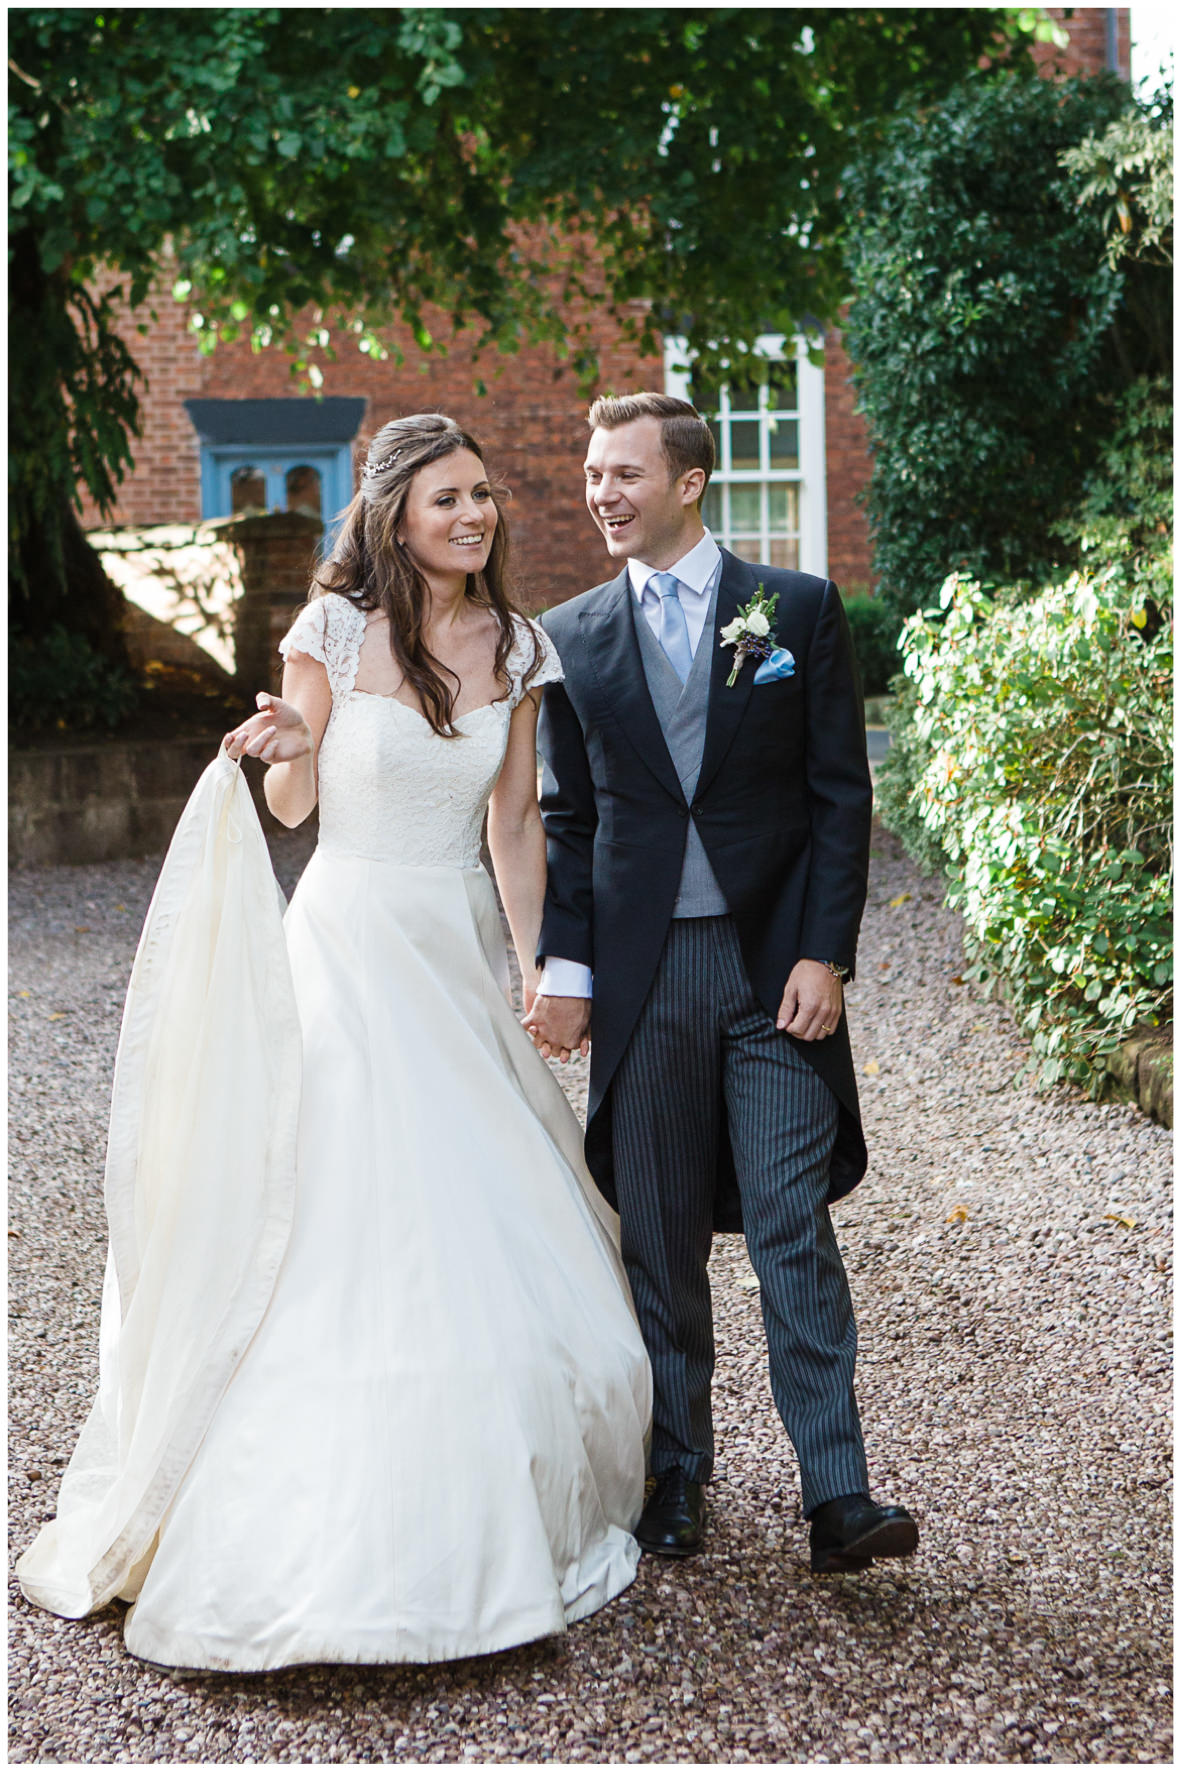 Lucy Davenport Photography, home wedding, marquee wedding, Caroline Castigliano, wedding dress, bridal couple, bride, groom